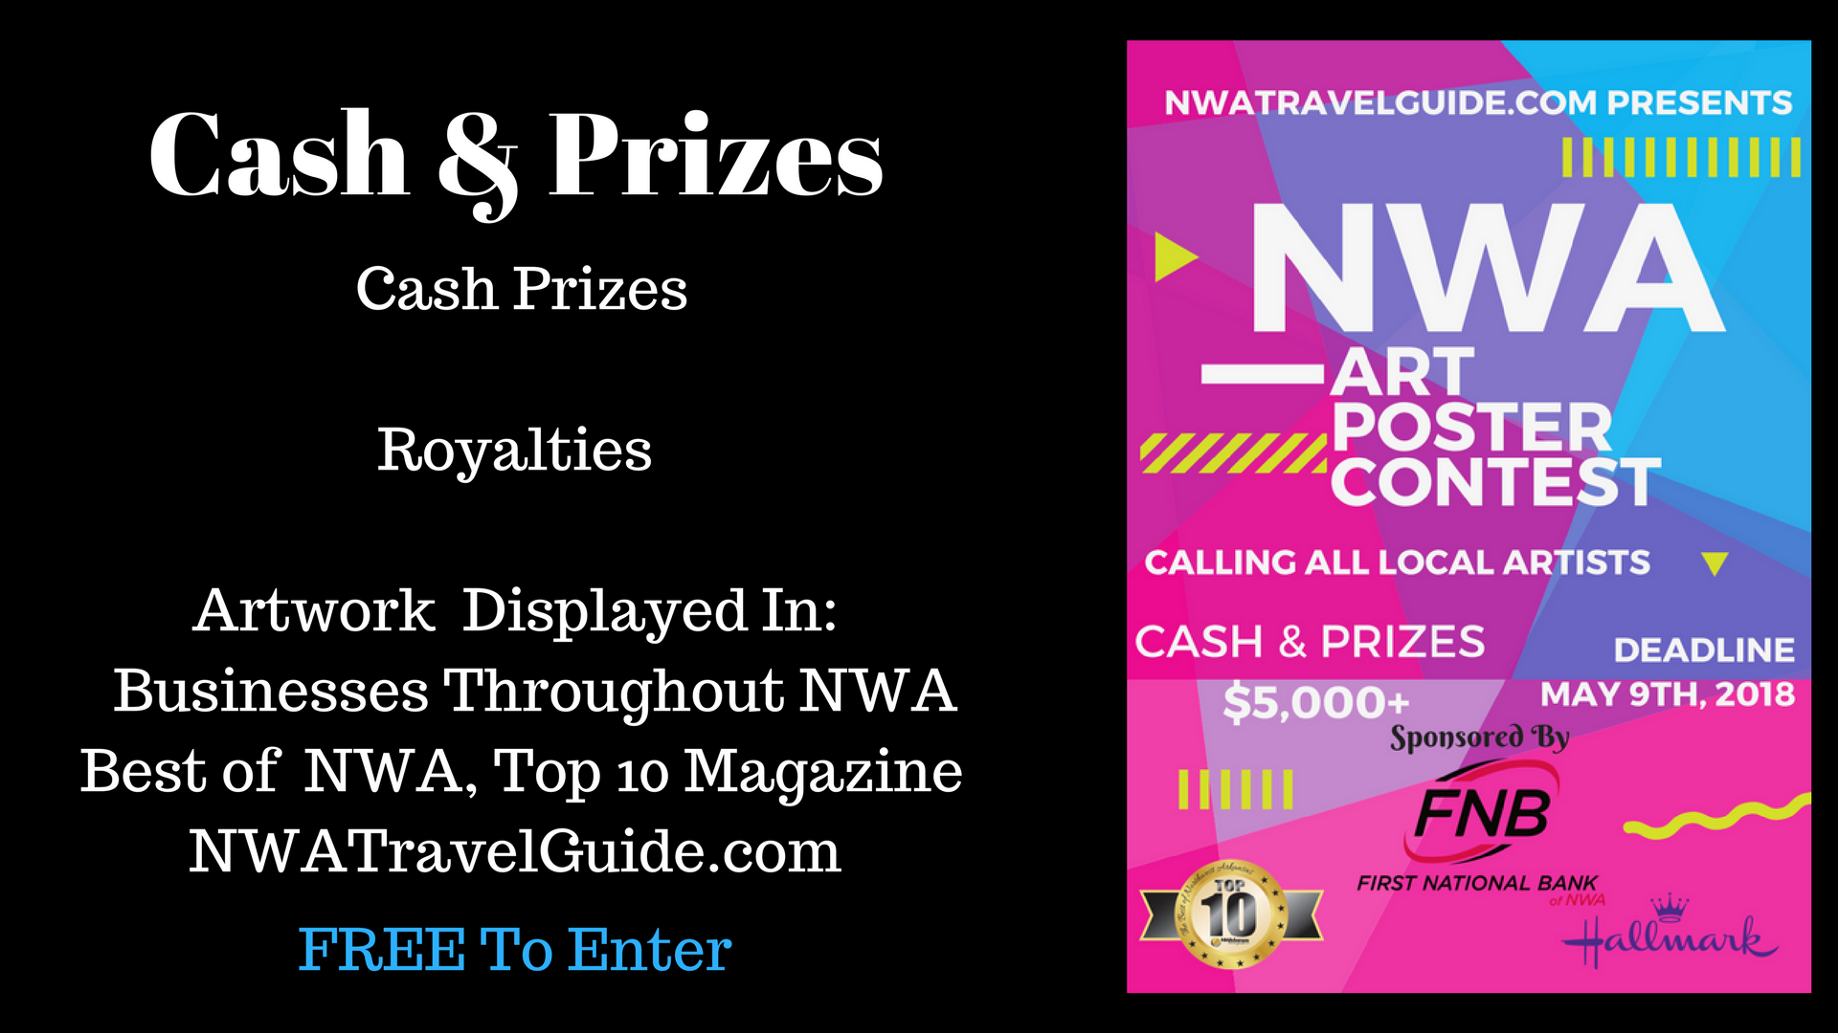 Wanted: Creative Artists for 2018 NWA Poster Contest